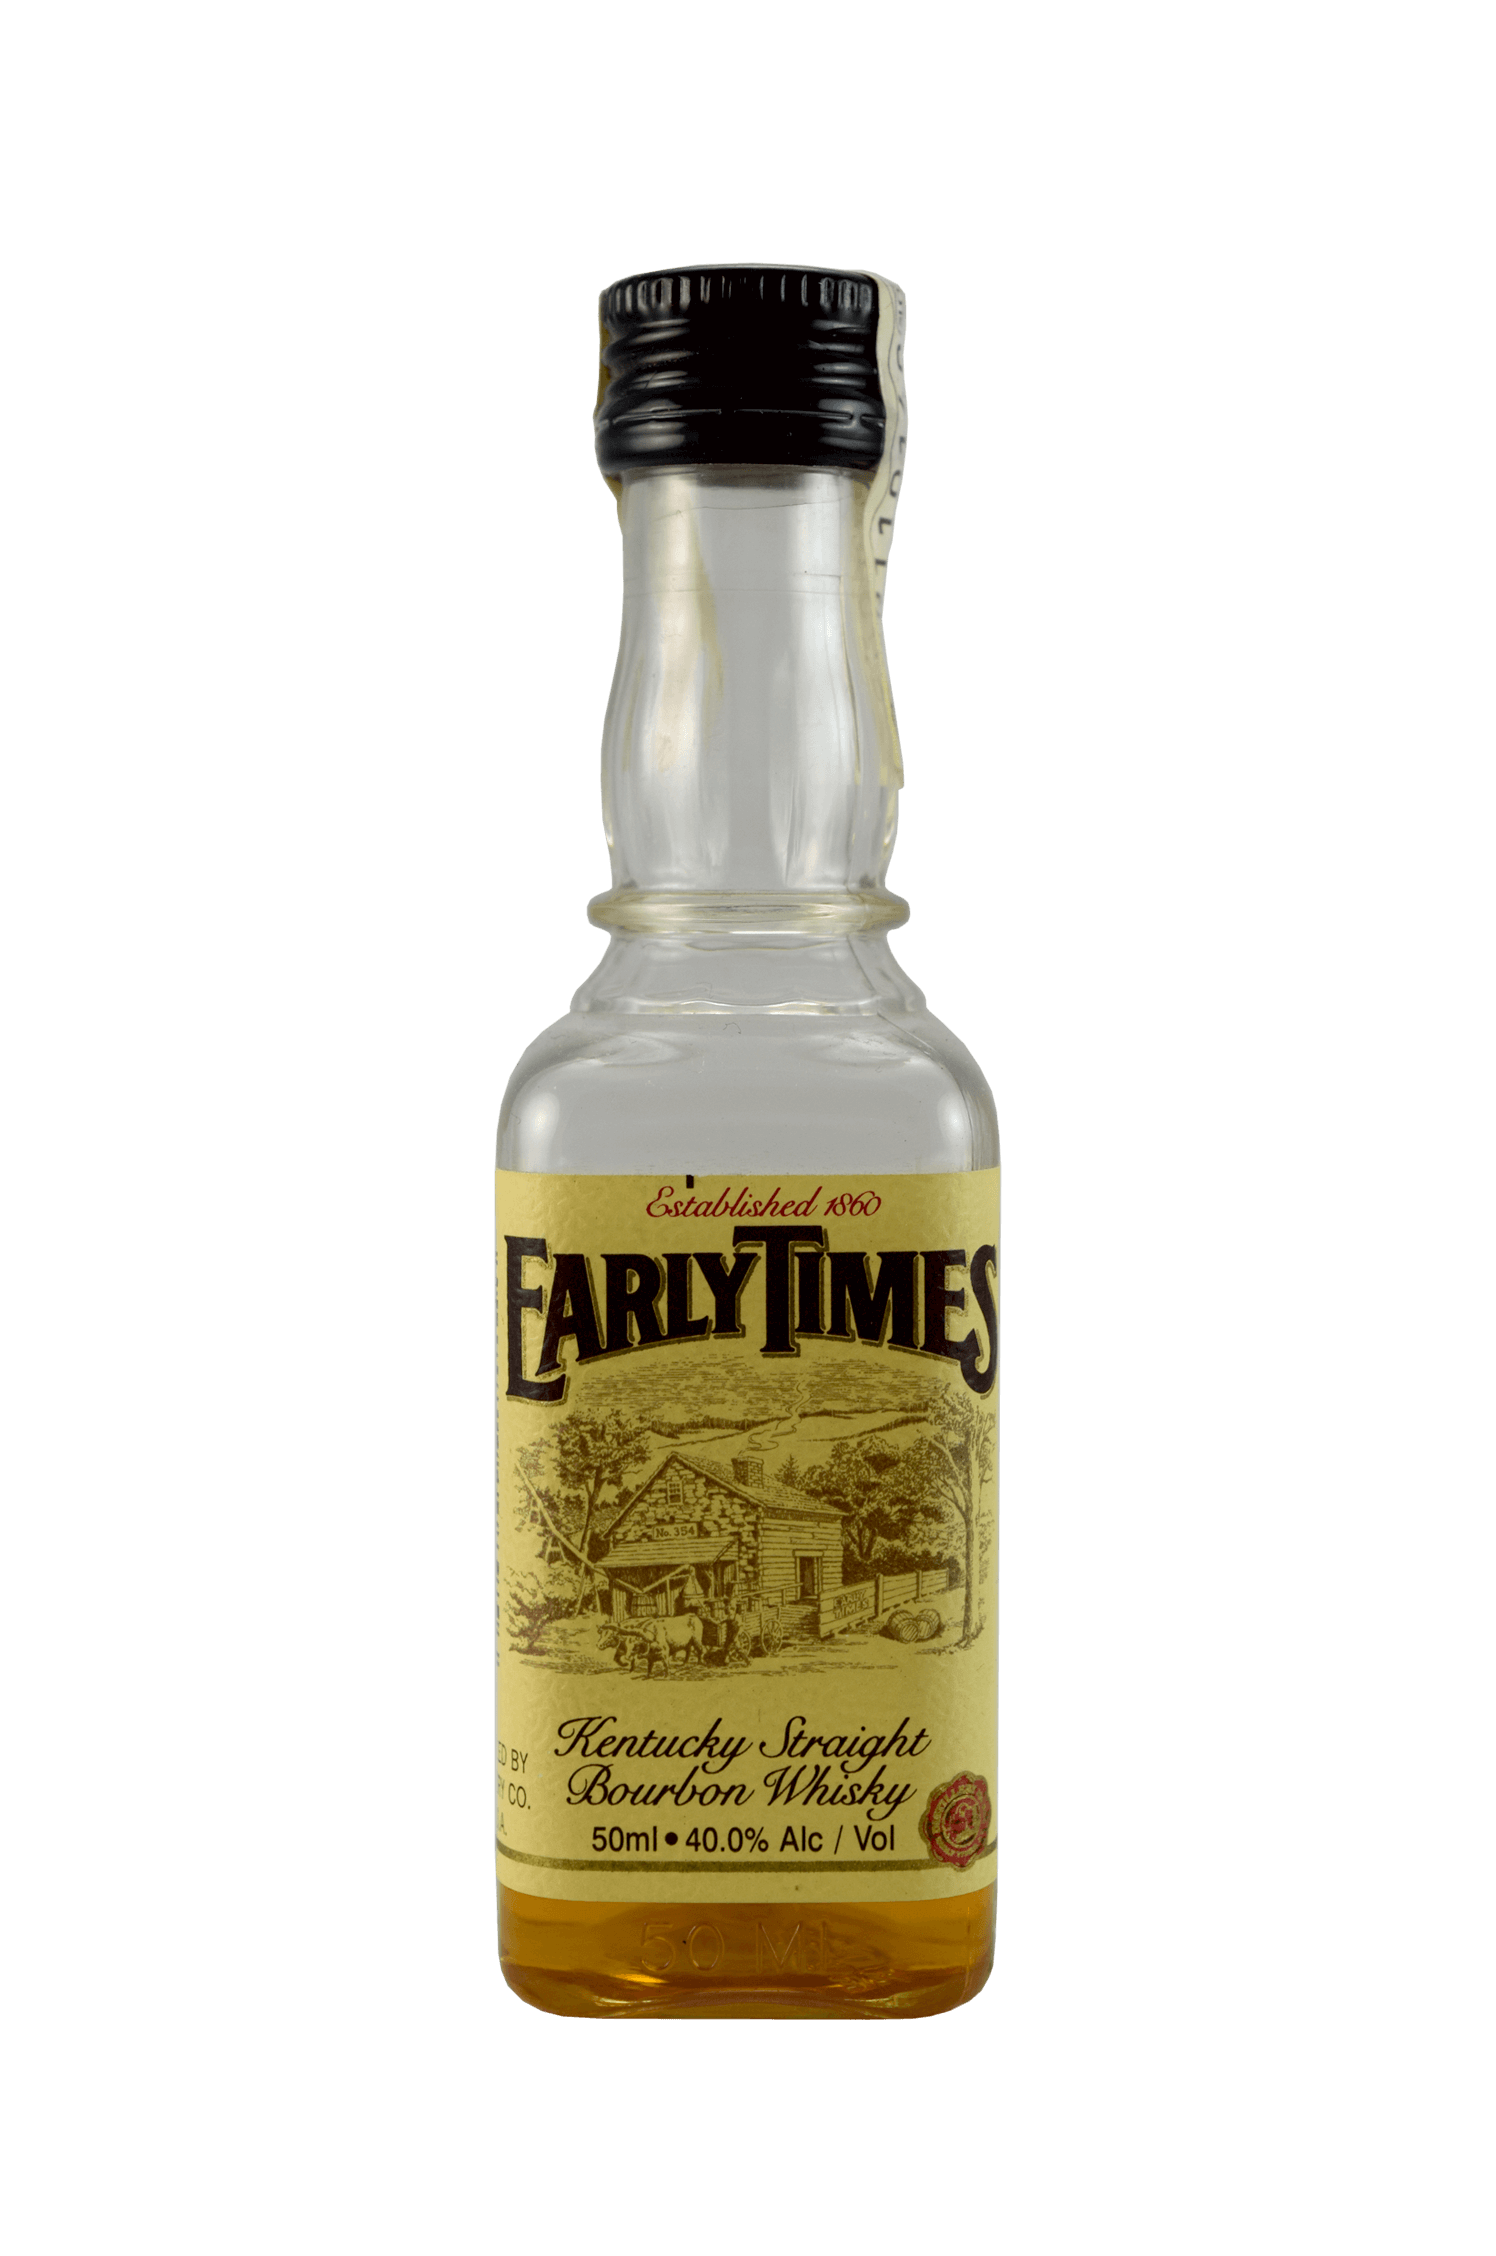 Early Times Bourbon Whisky